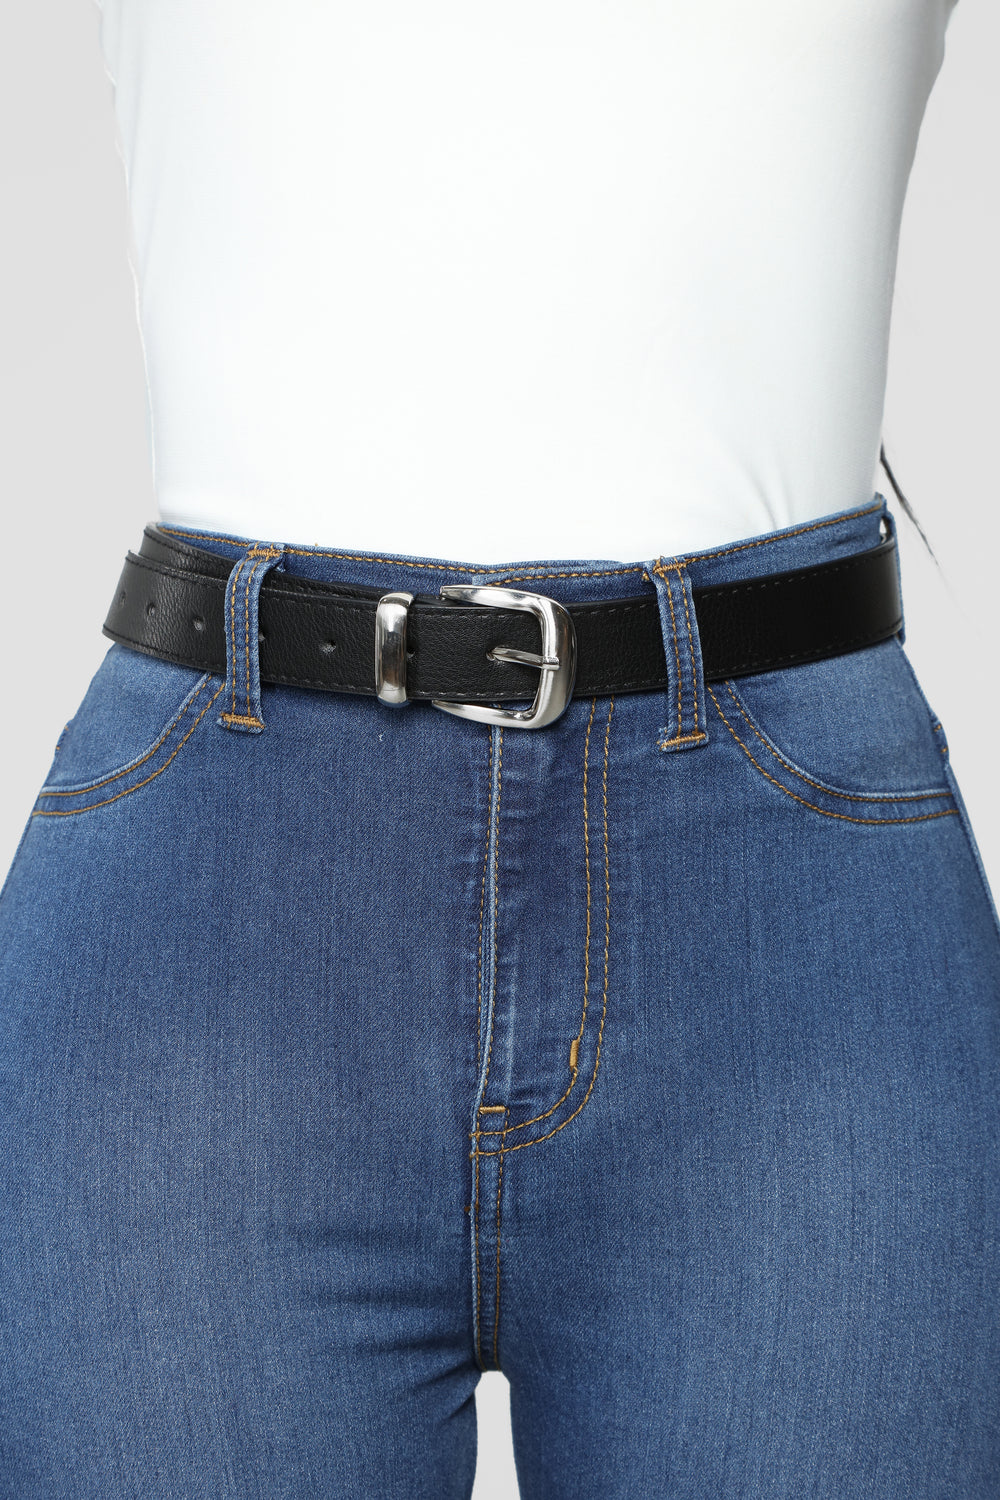 From The West Belt - Black